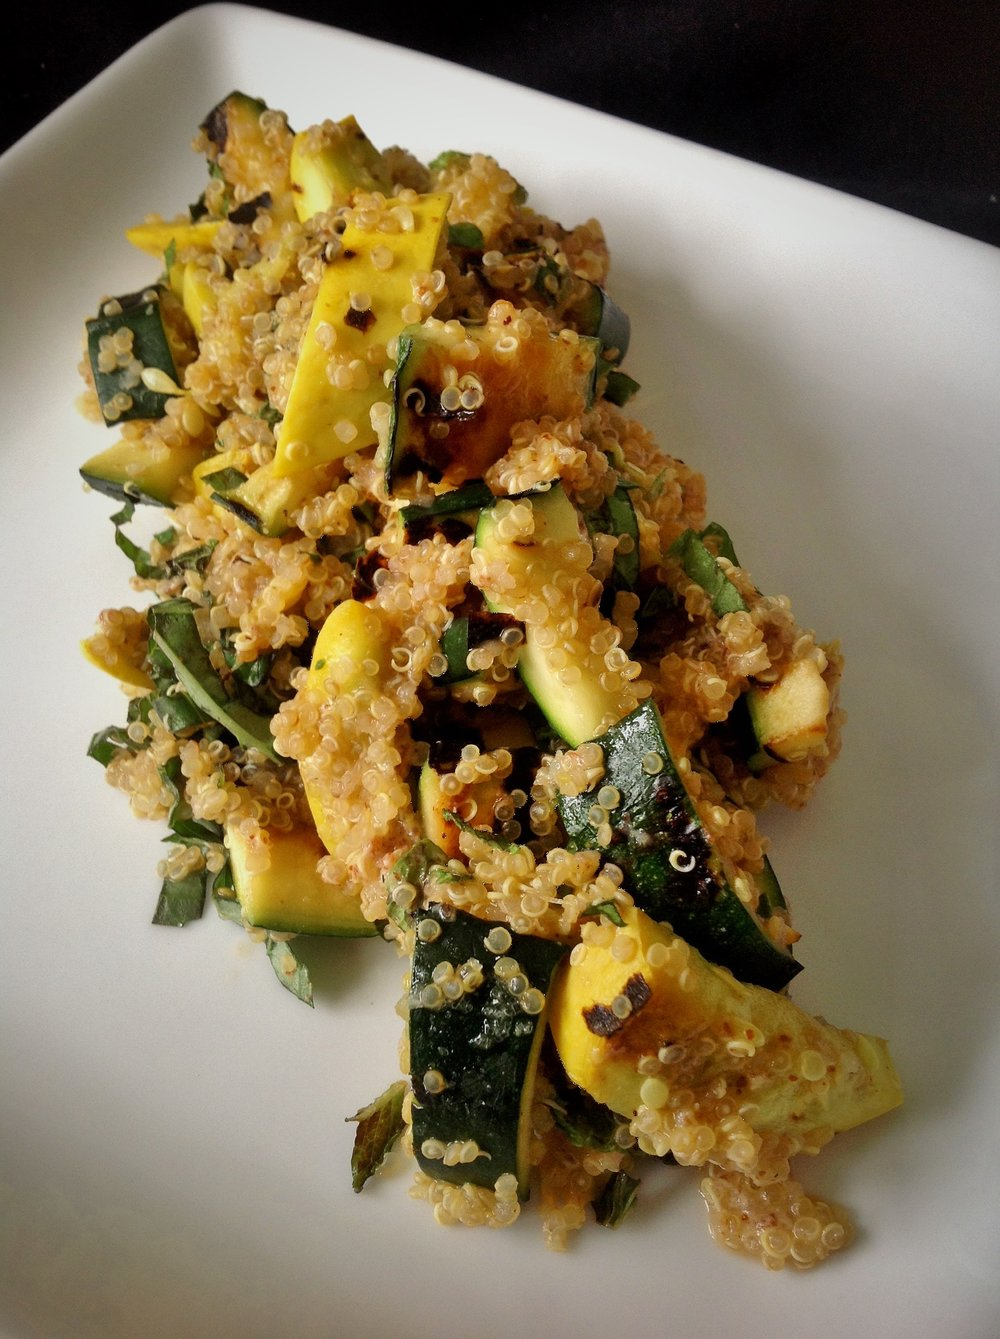 Charred Zucchini and Summer Squash Quinoa - Healthy, Gluten-Free, Oil-Free, Plant-Based, Vegan Grill Salad Recipe